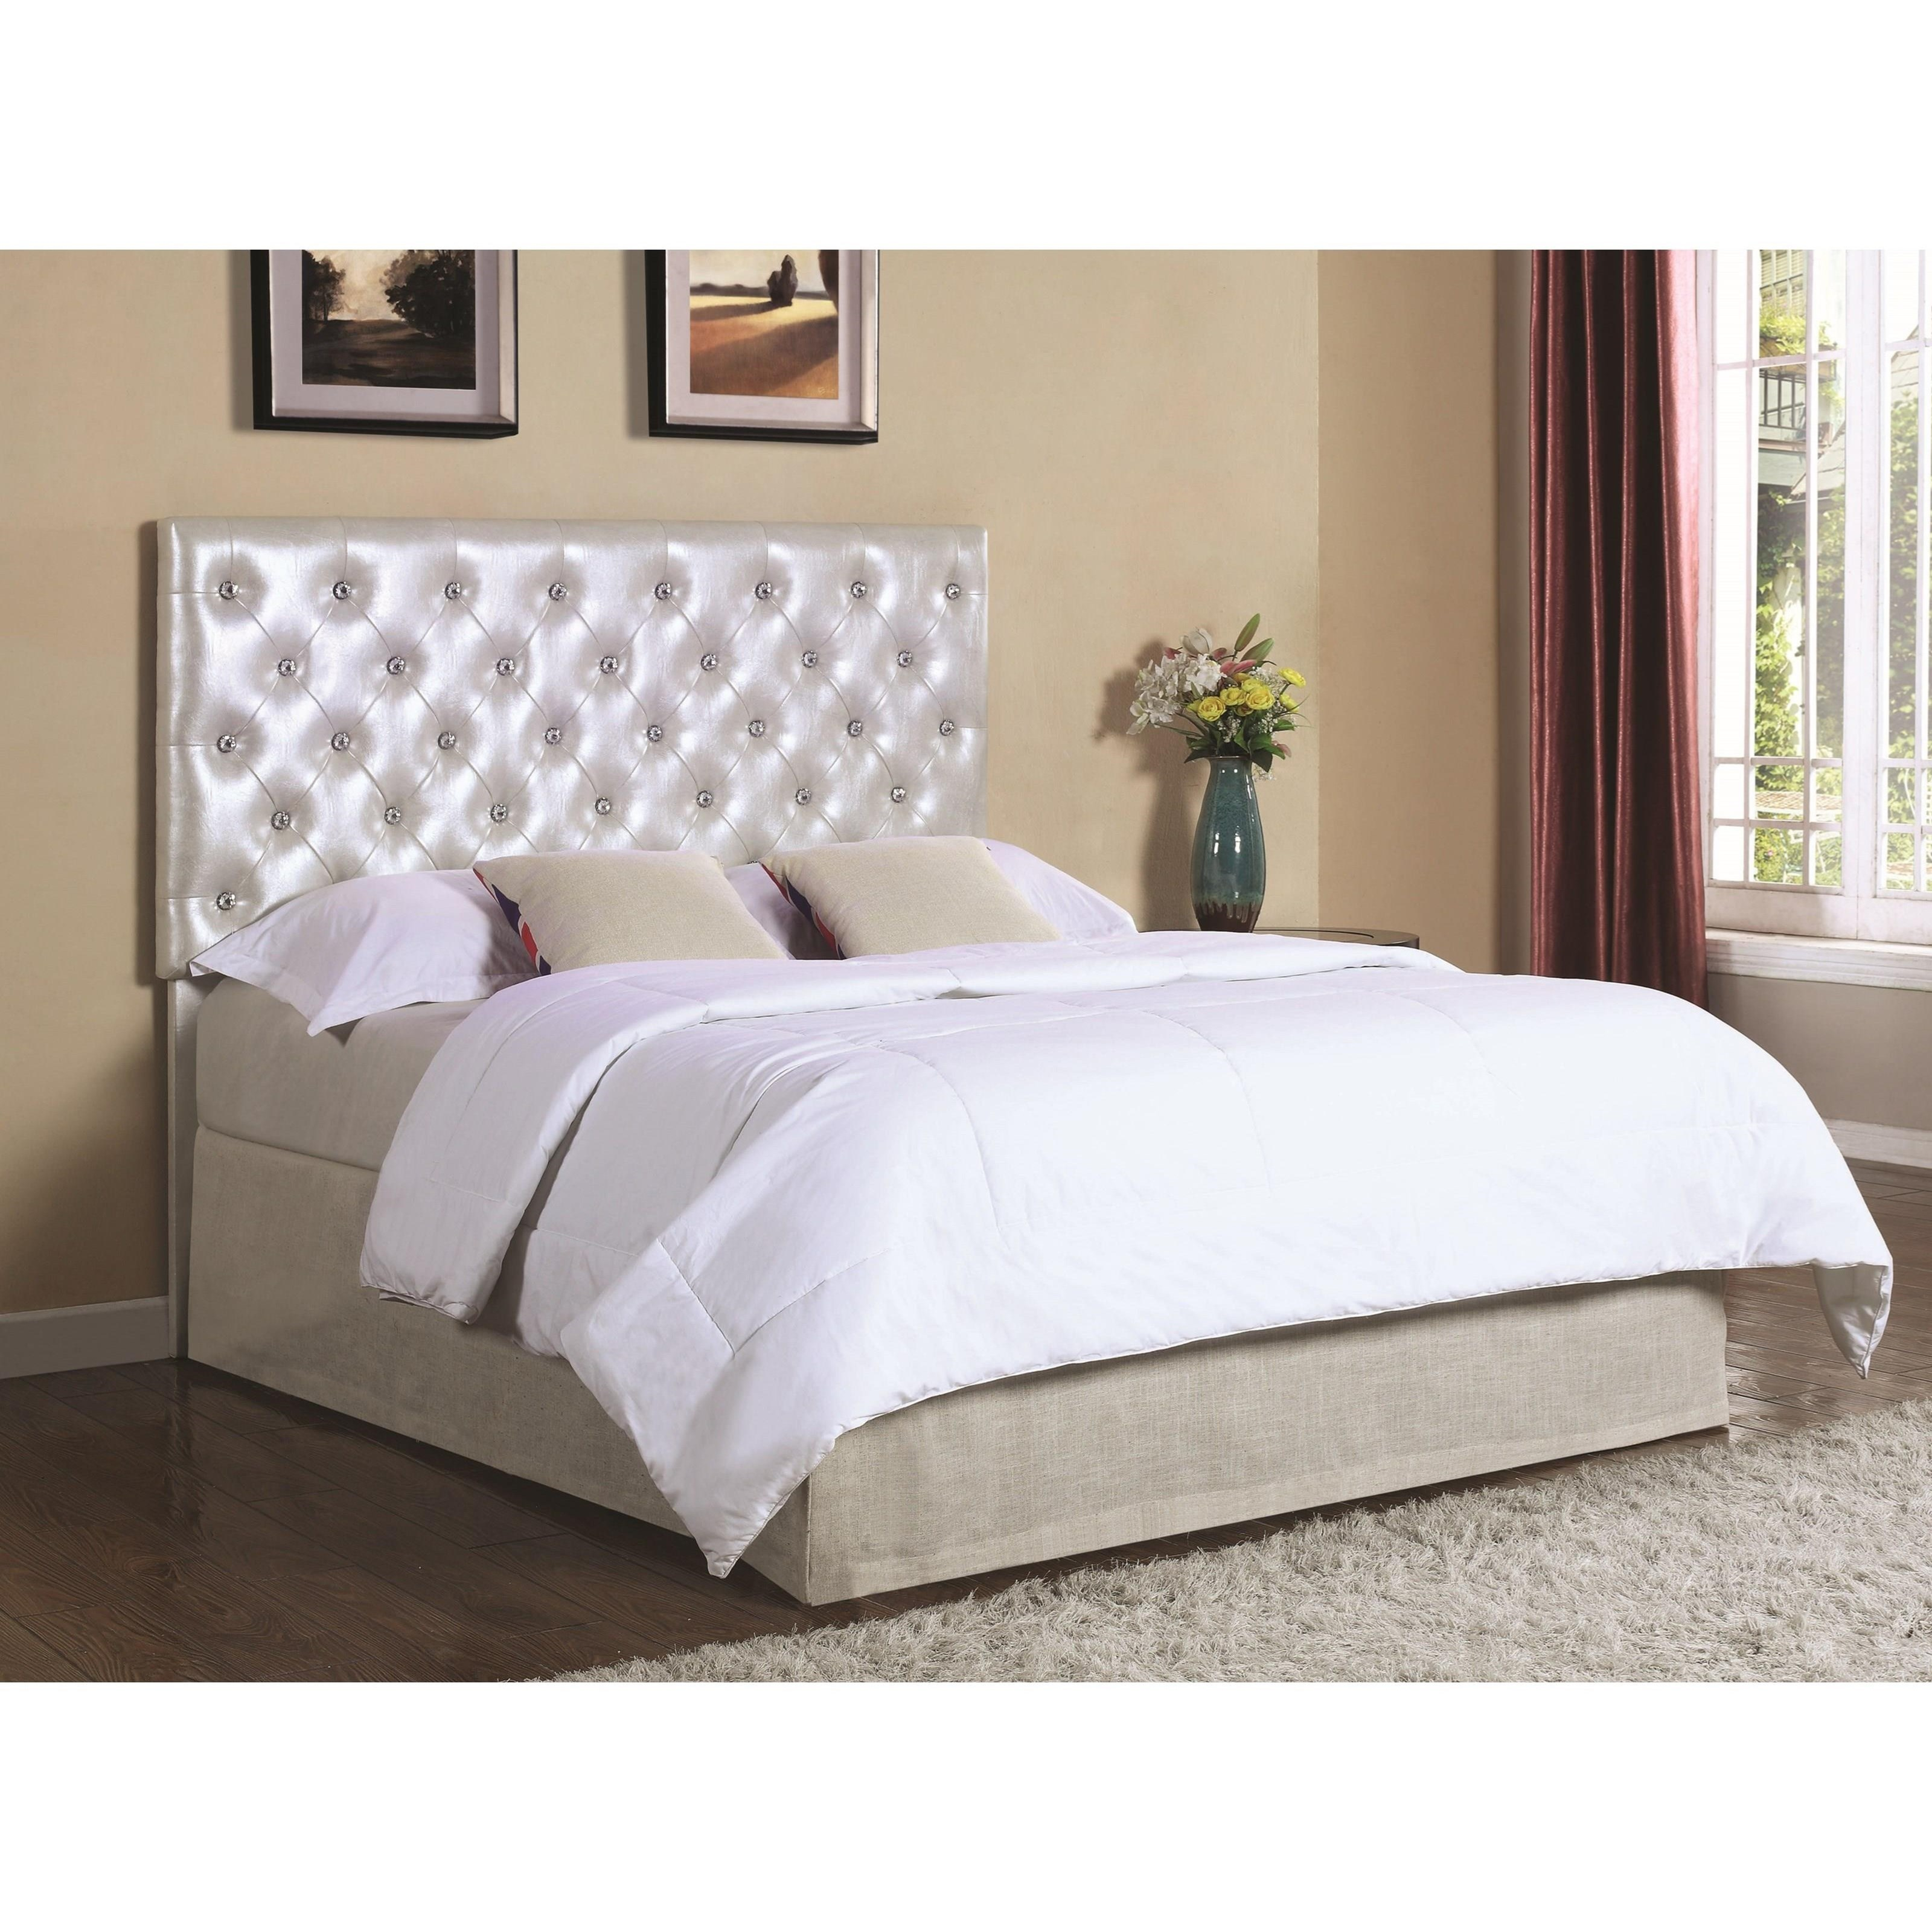 Coaster Upholstered Beds Queen/Full Headboard - Item Number: 300596QF